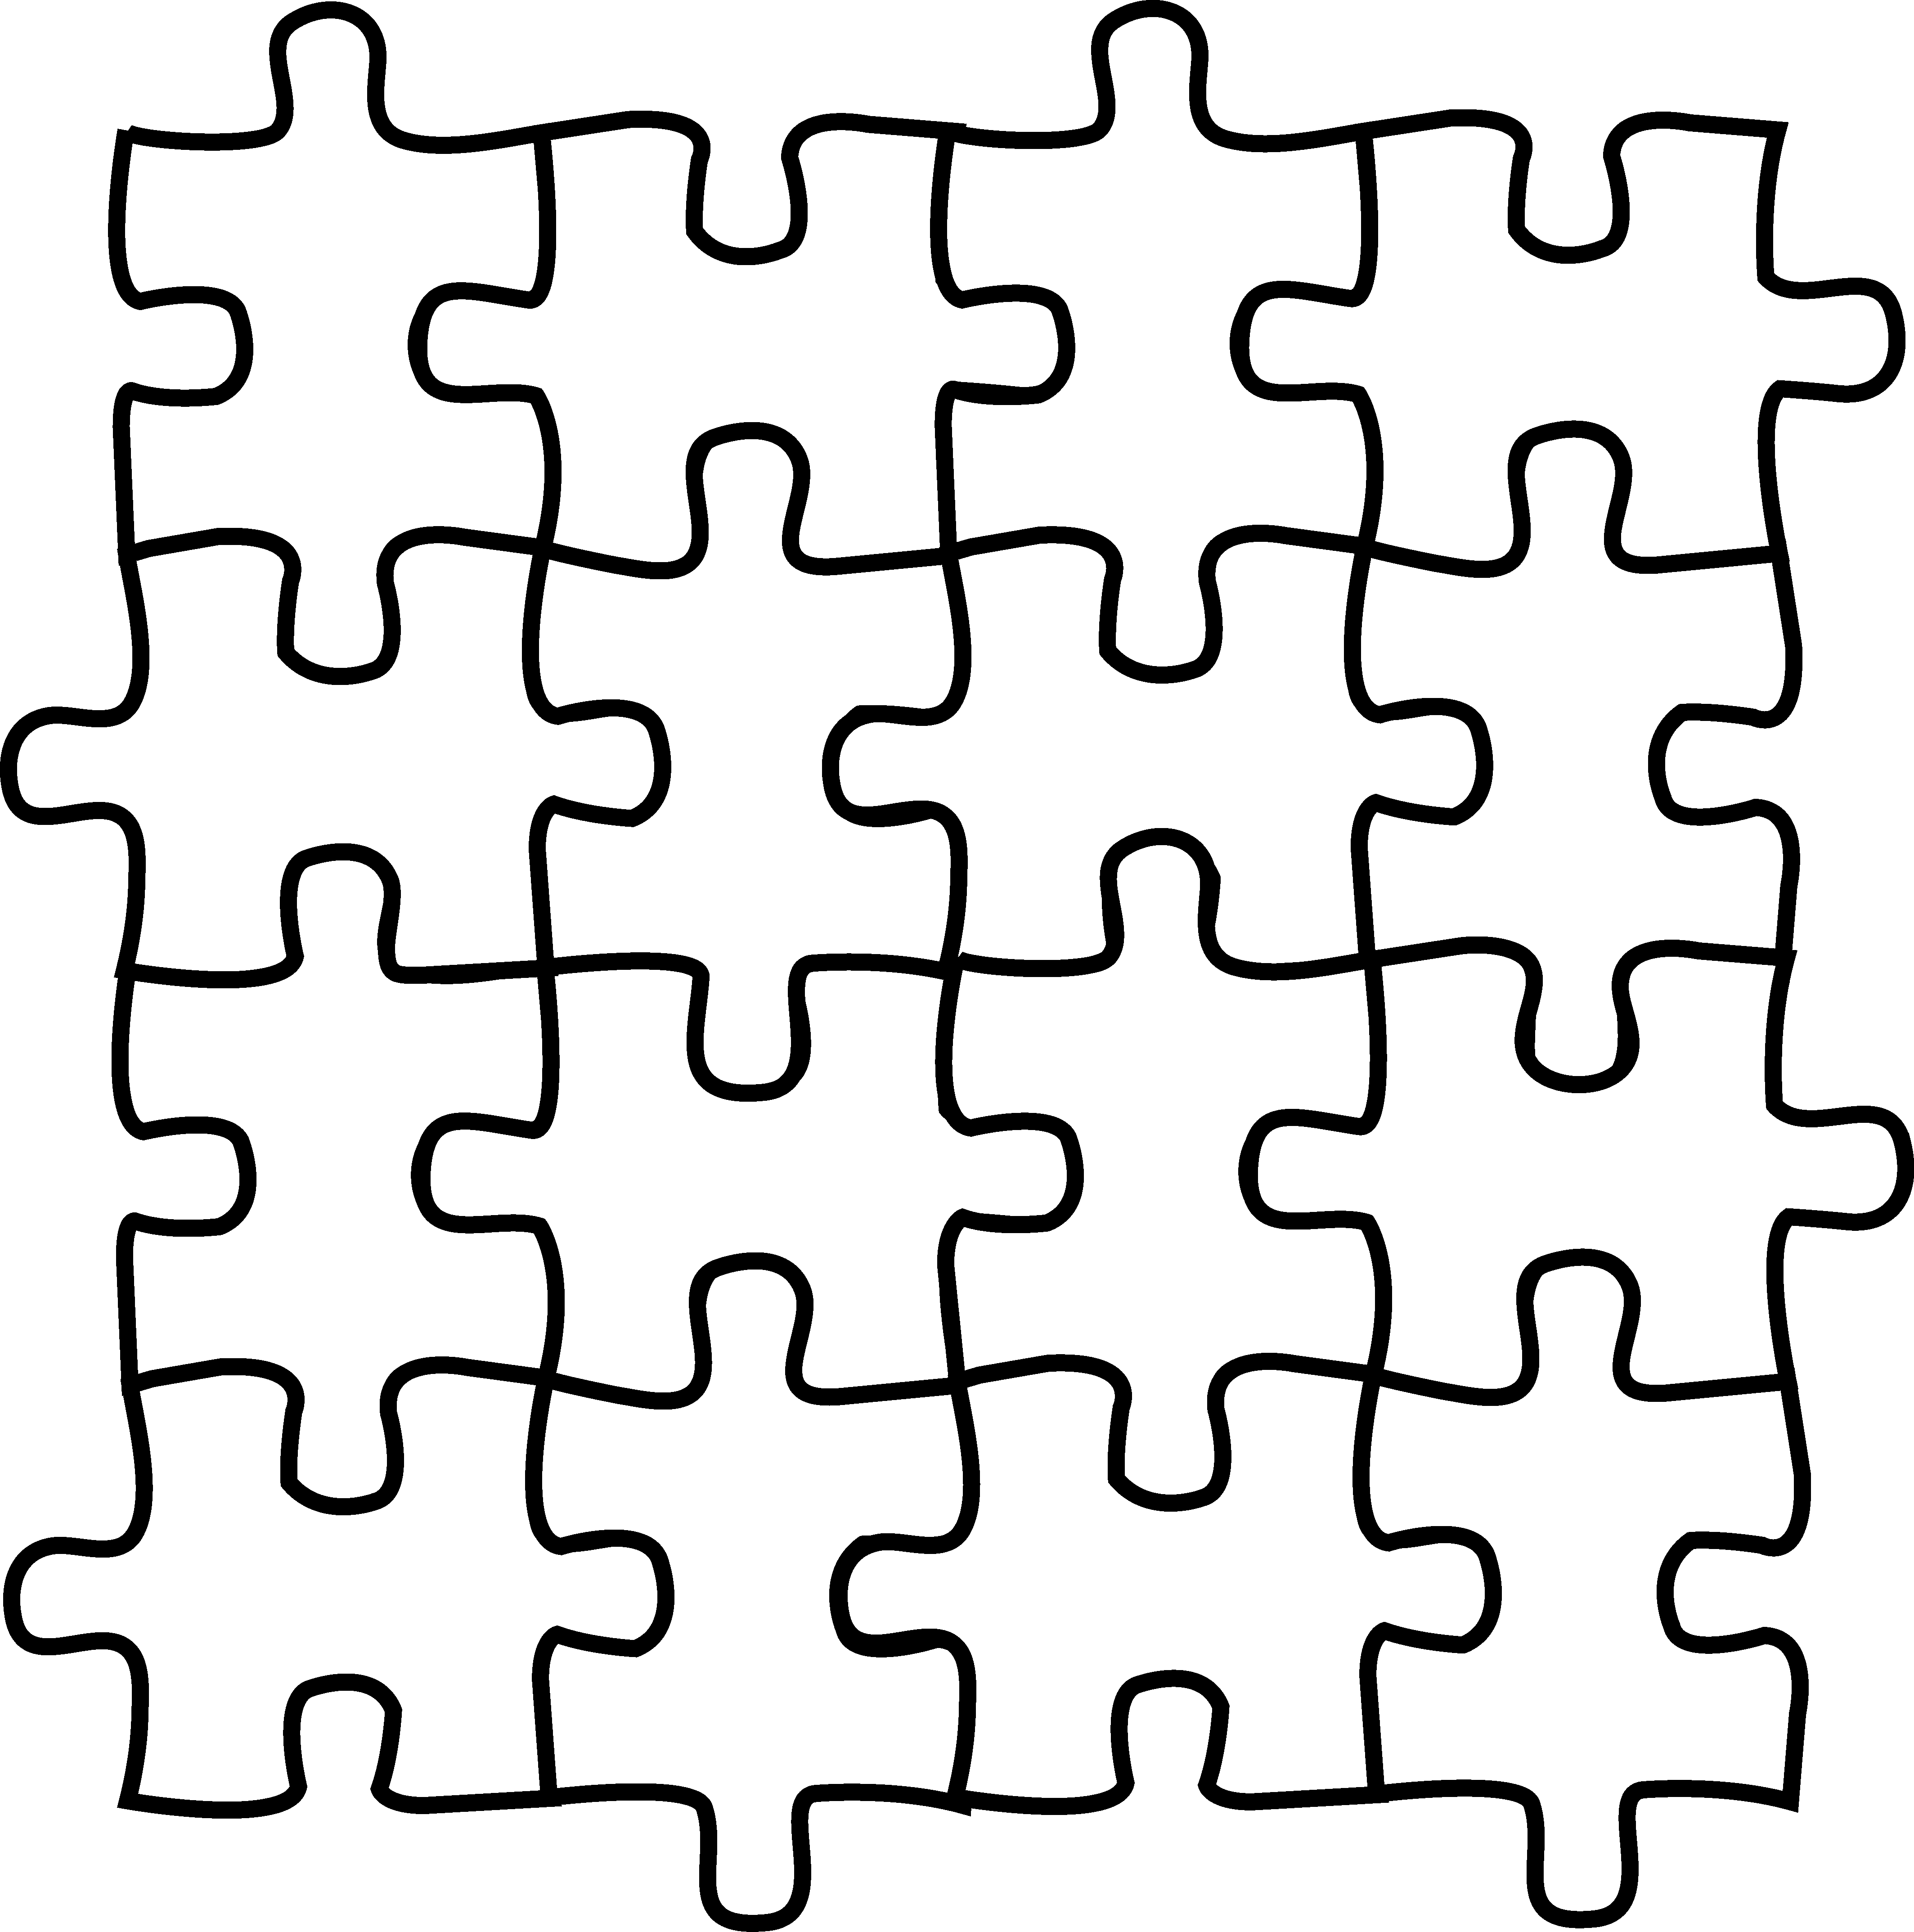 picture freeuse Puzzle pieces coloring page. Puzzles vector